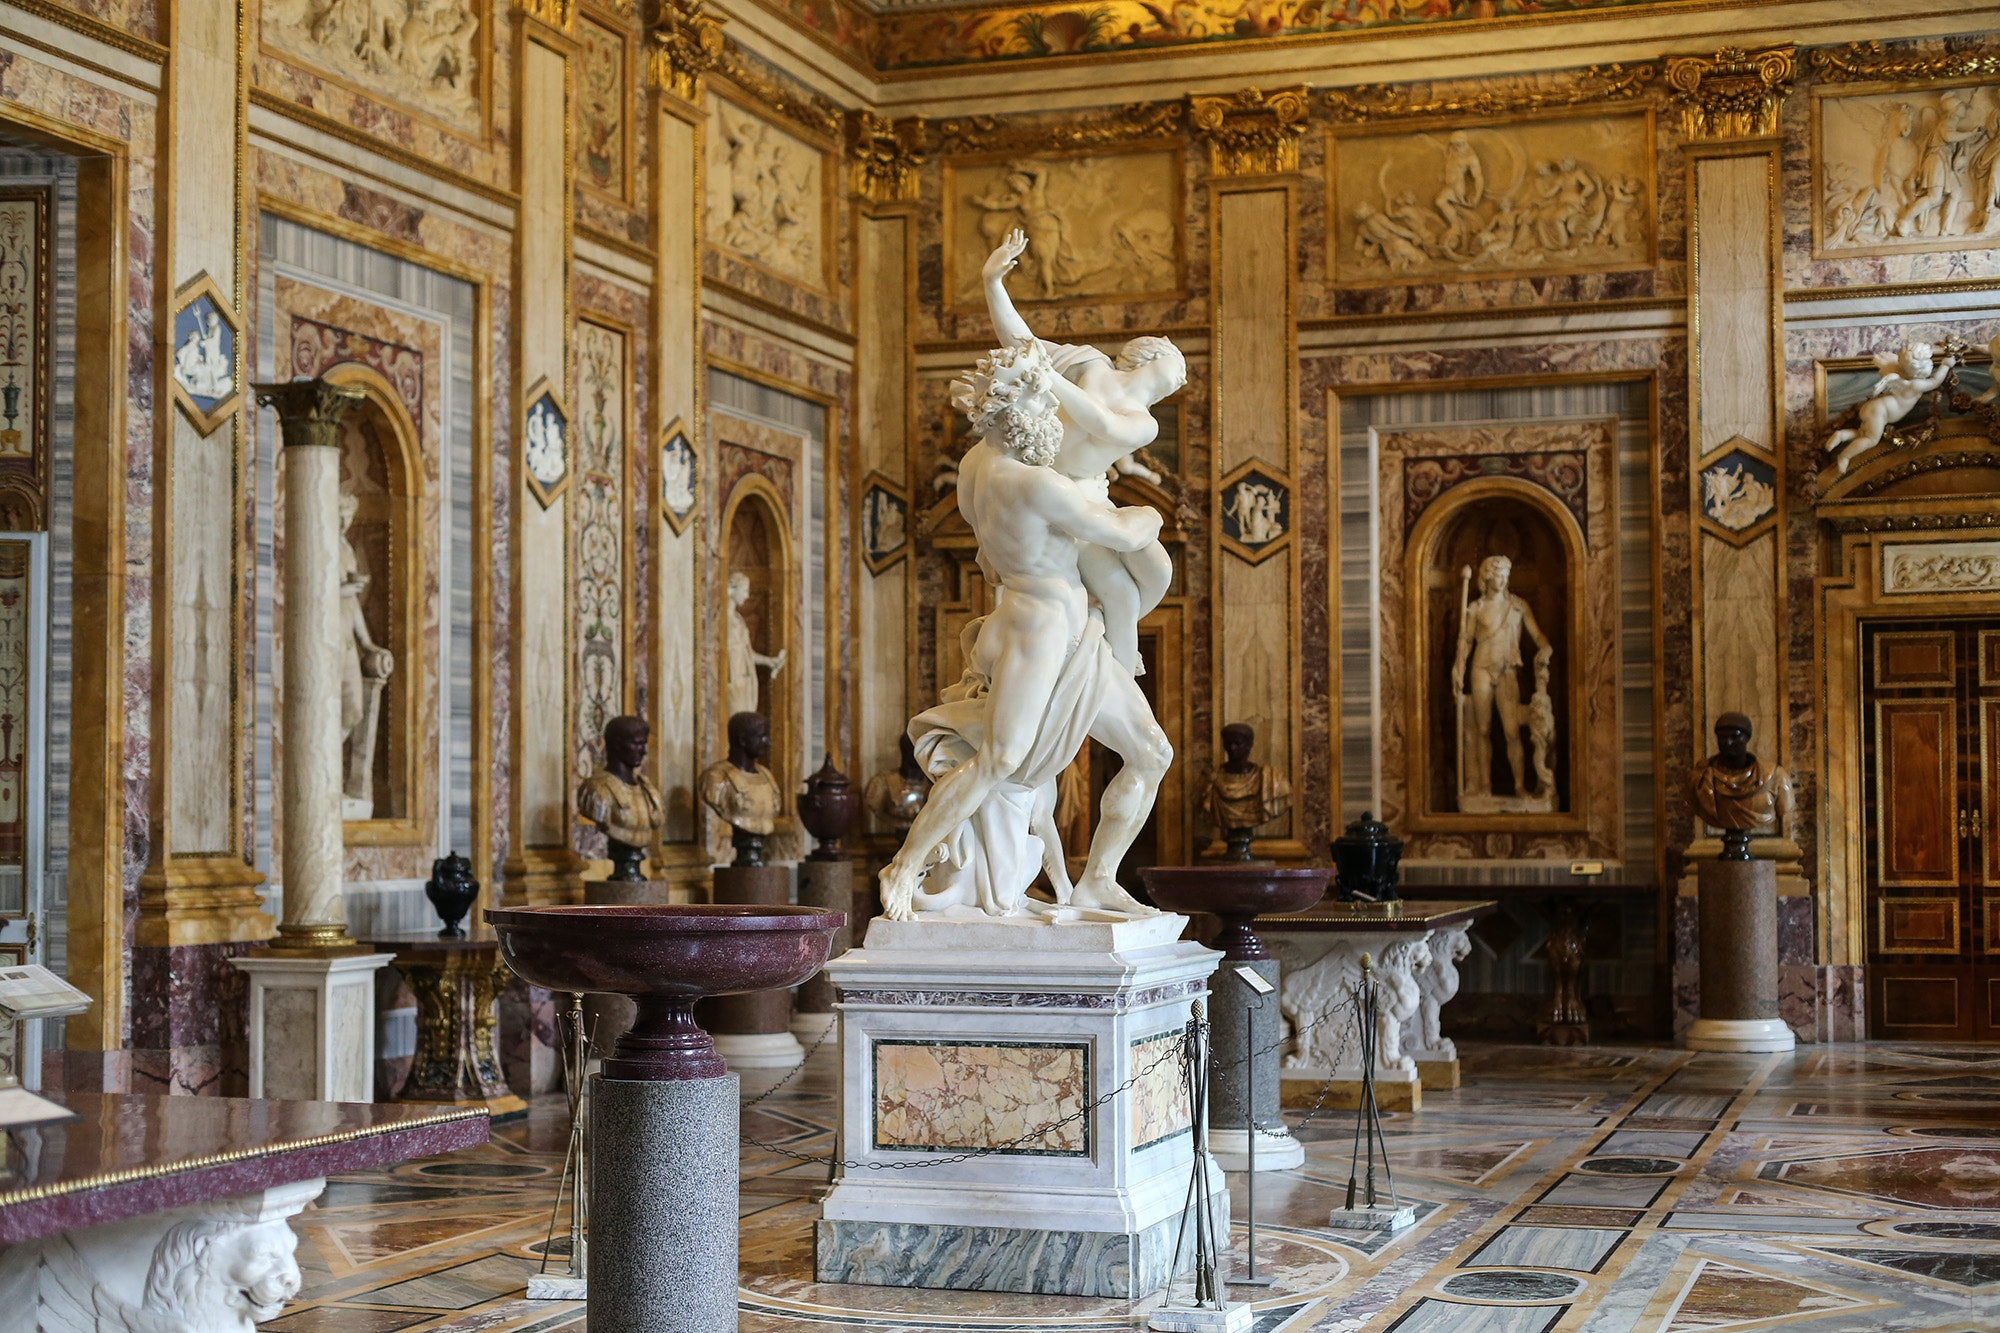 Enjoy Picassos and Berninis at the same time at the Galleria Borghese.